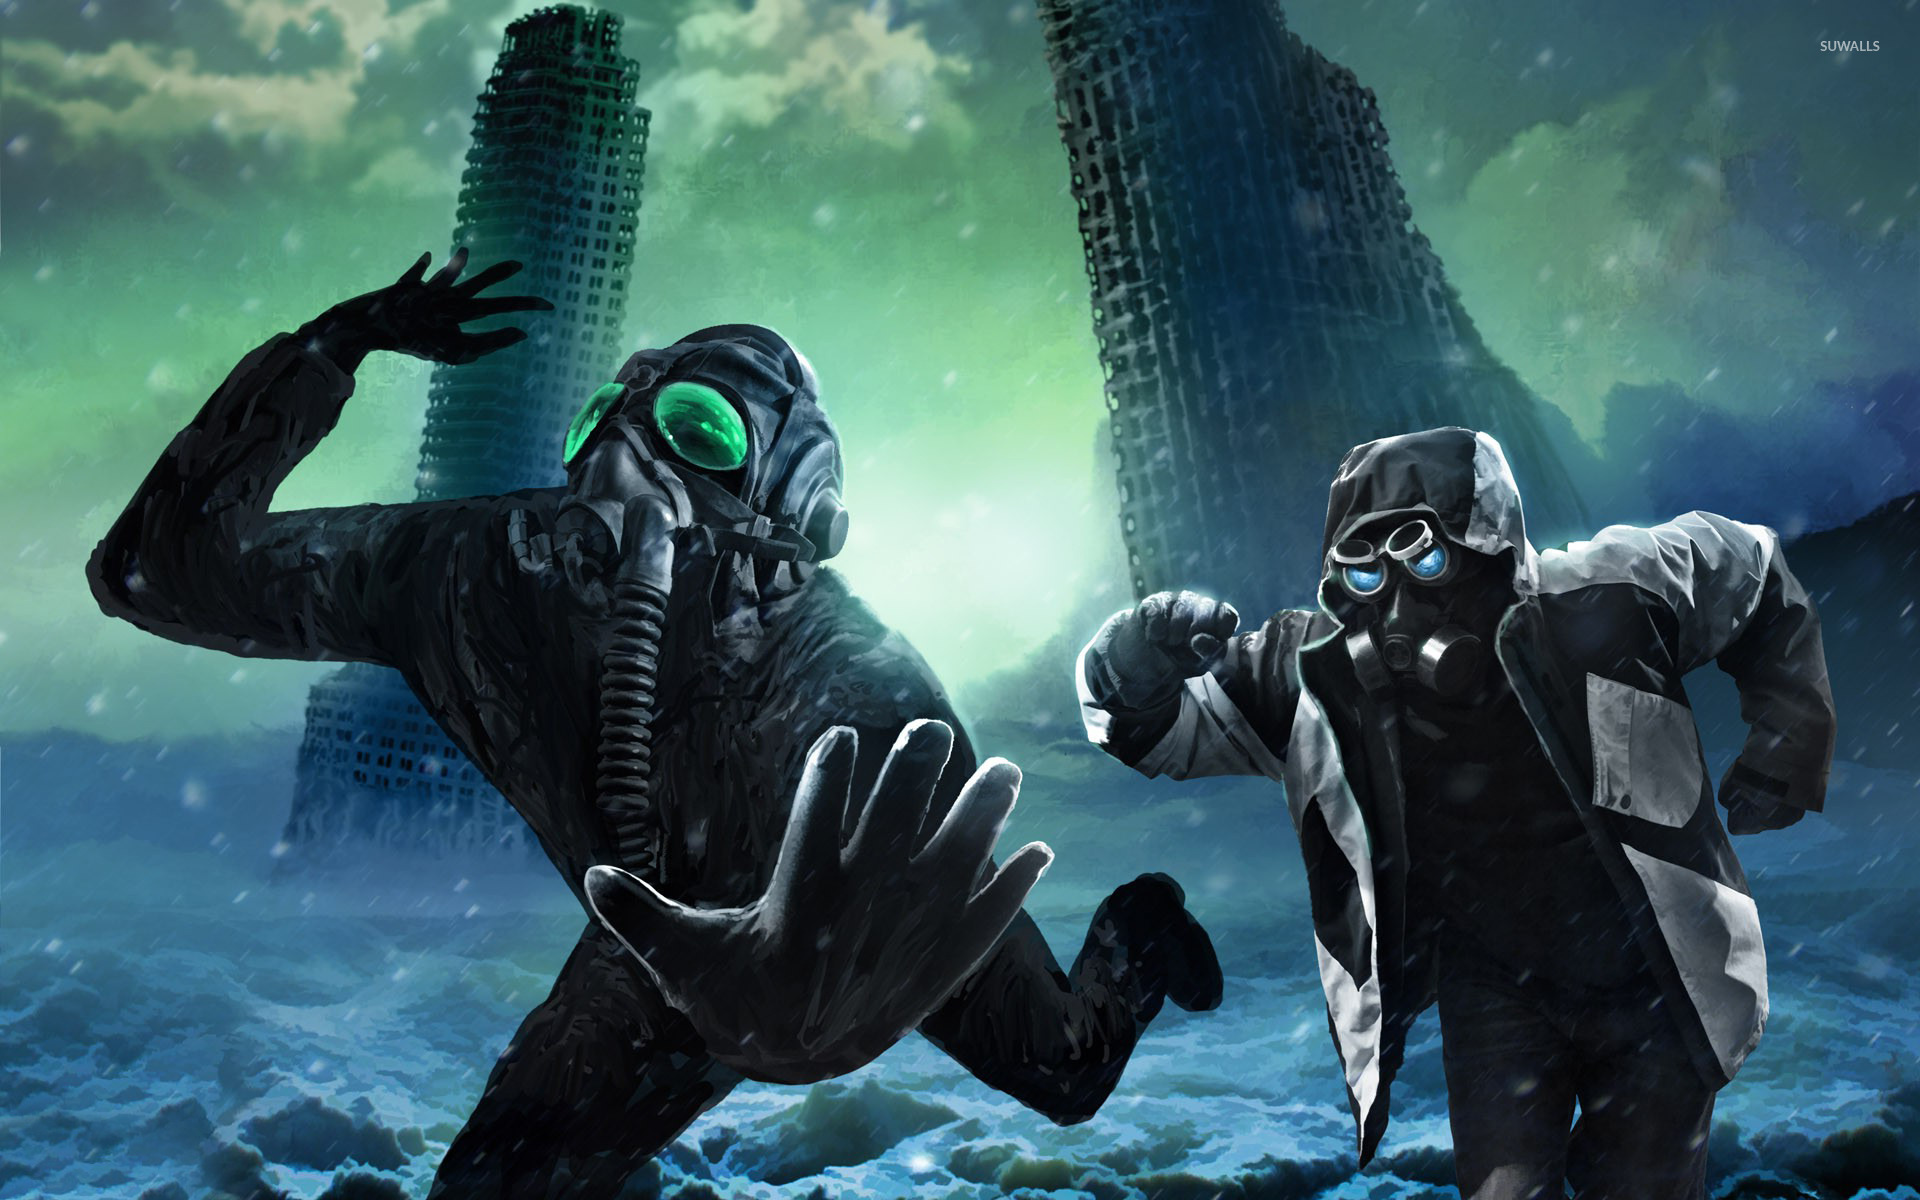 Running away with gas masks wallpaper - Fantasy wallpapers ...